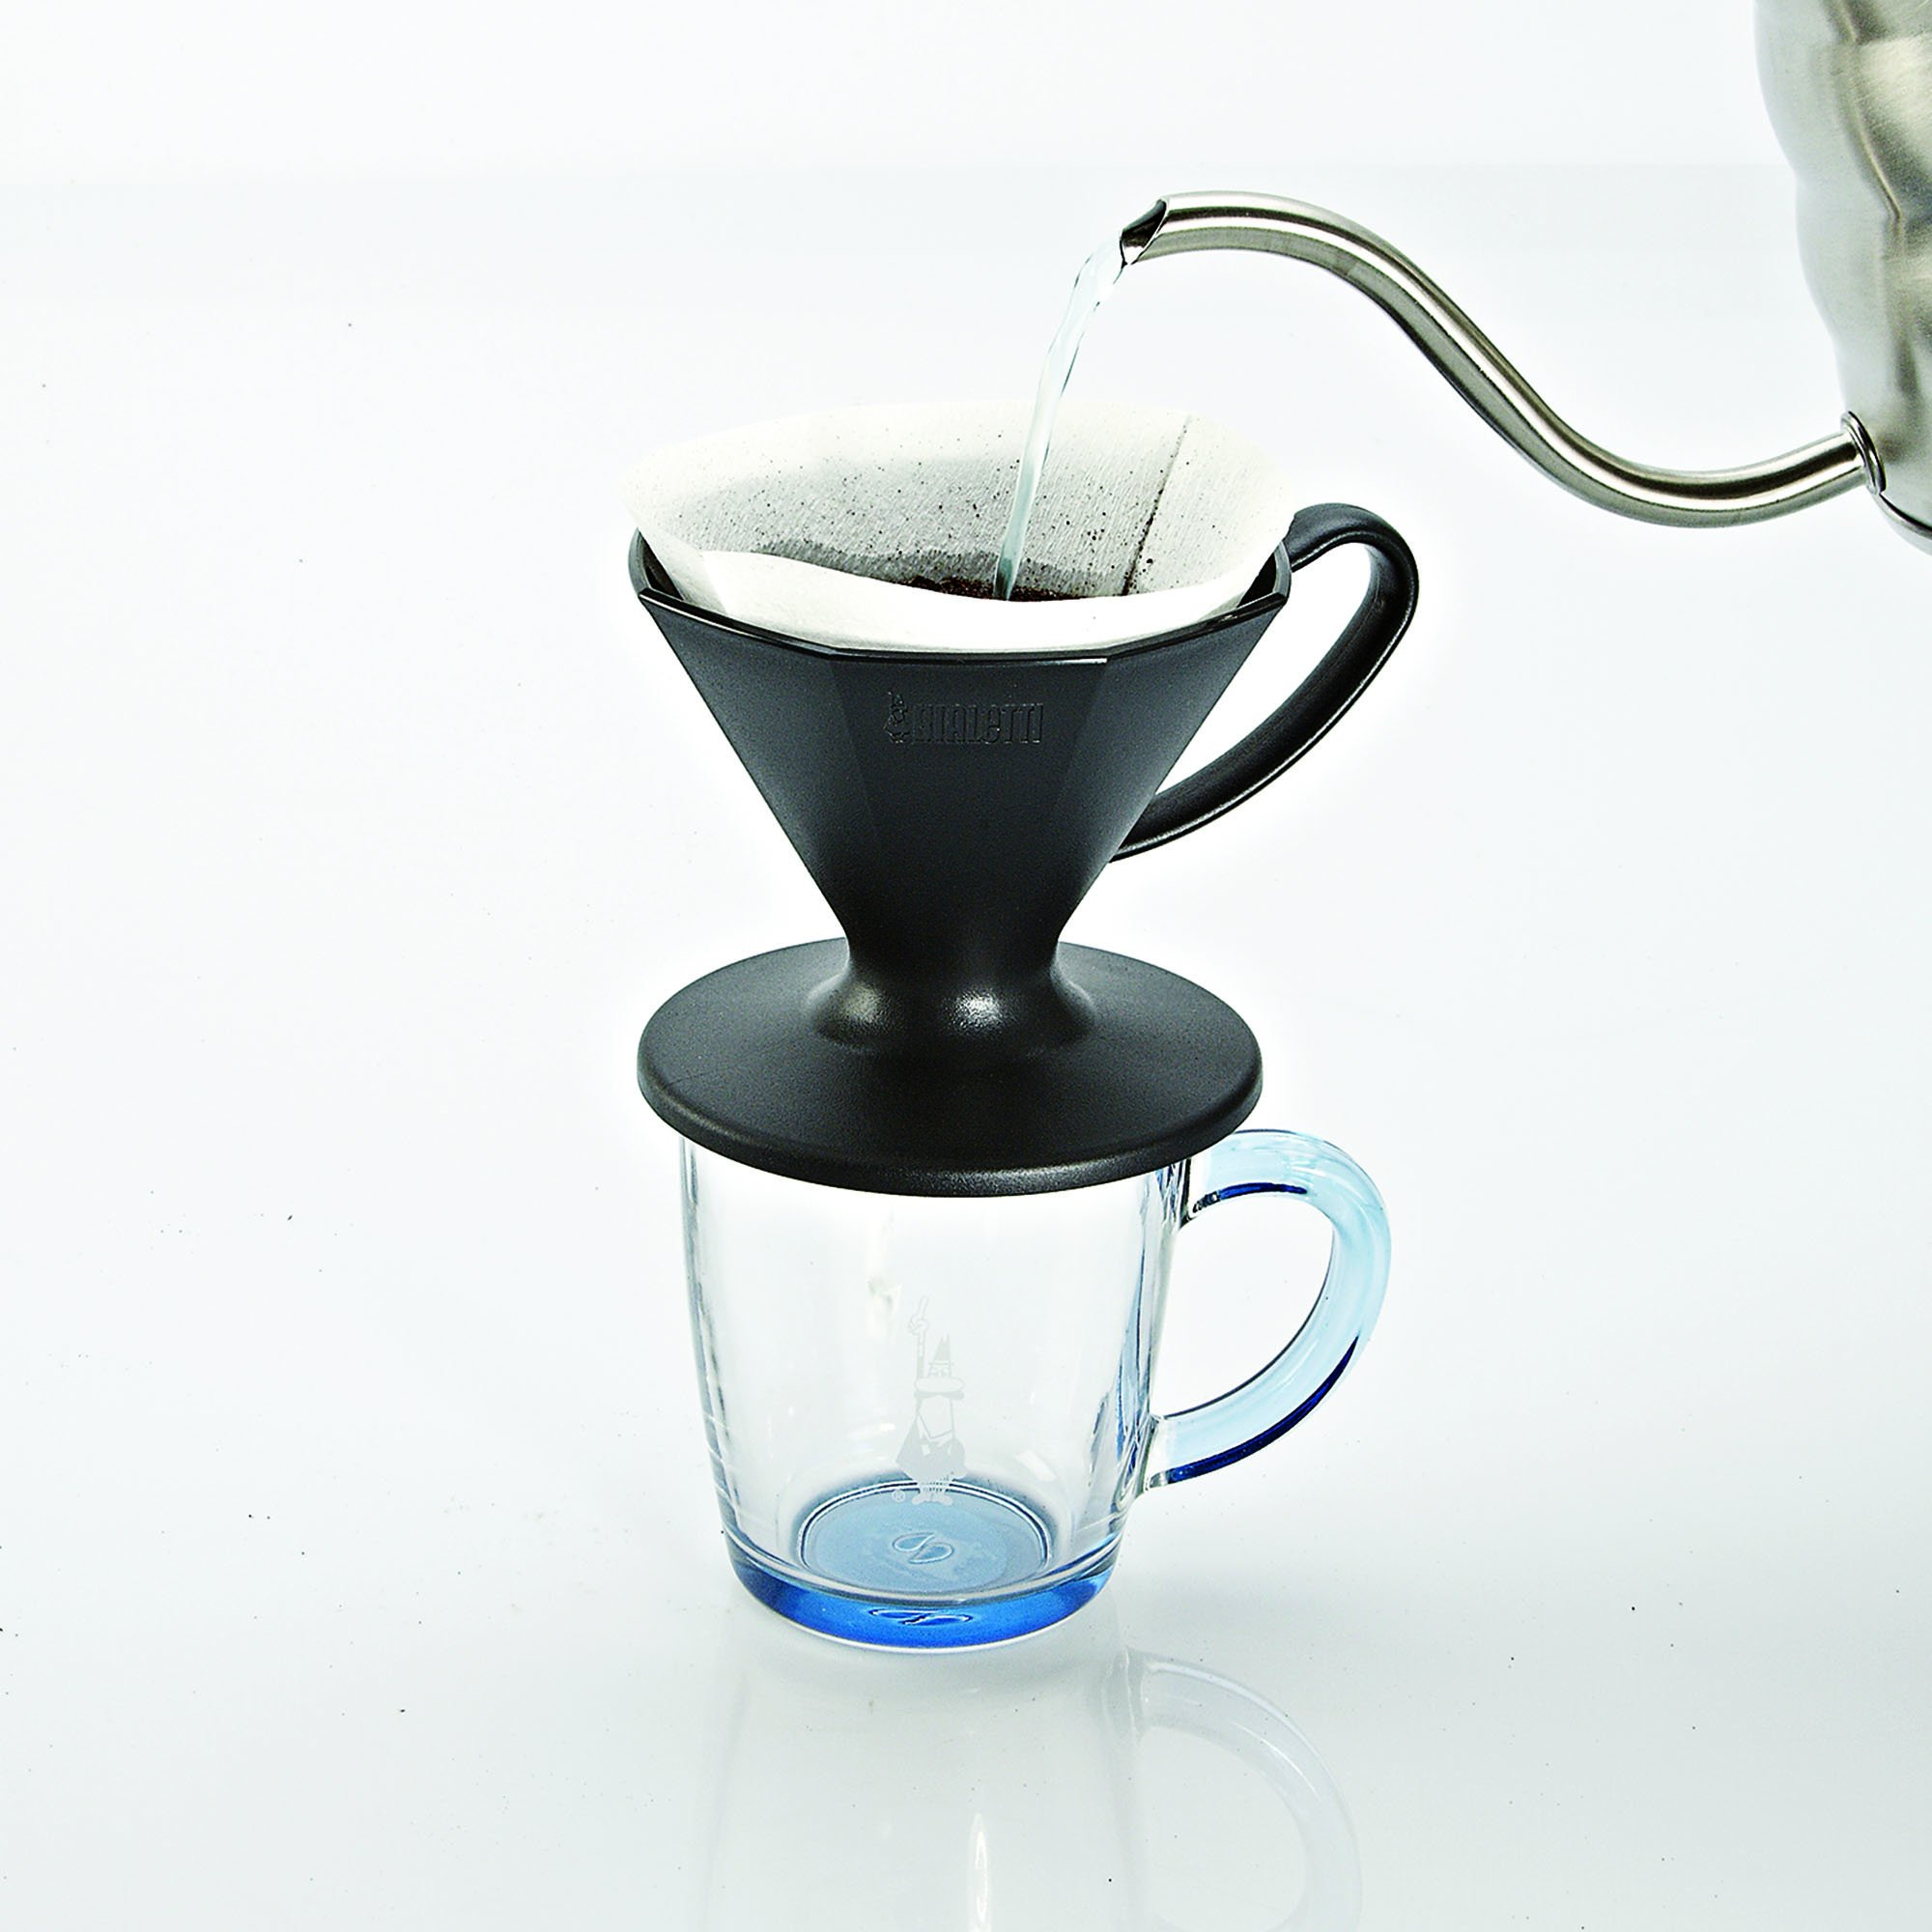 Bialetti 6751 2 Cup Plastic Pourover Coffee Dripper, Black by Bialetti (Image #1)